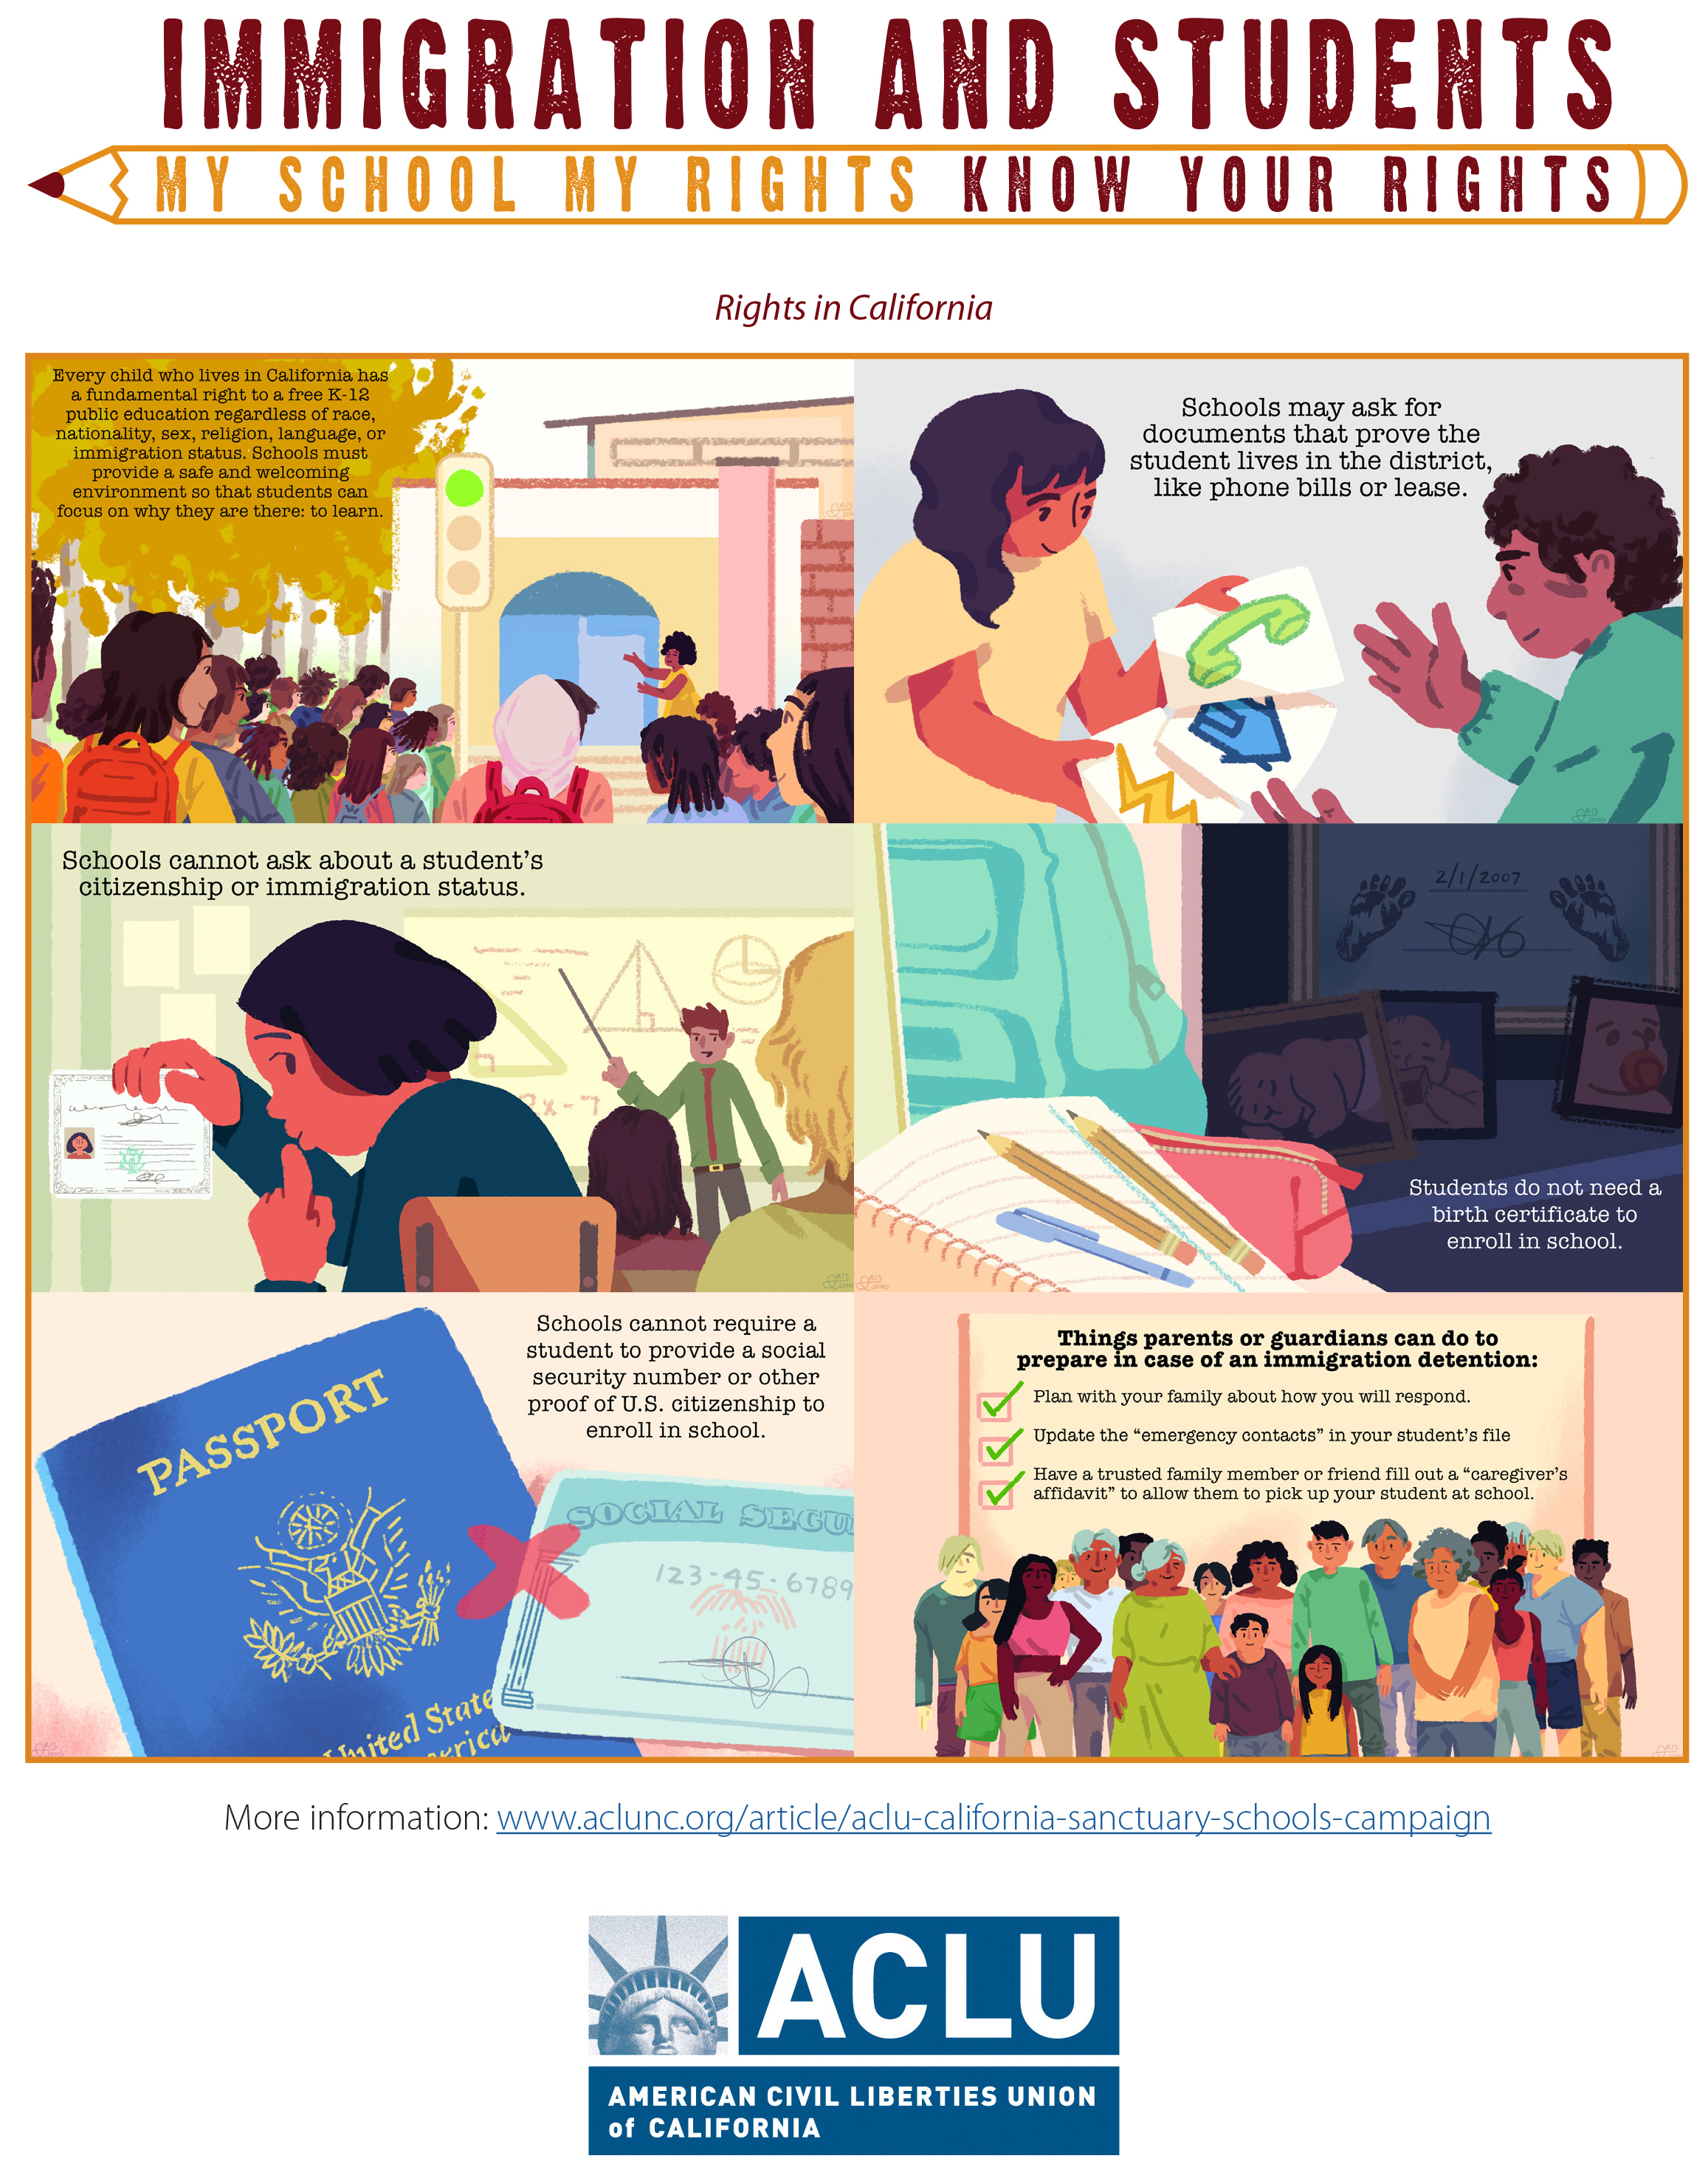 MSMR-ACLU-of-CA-Immigration-Students-comic-English.jpg